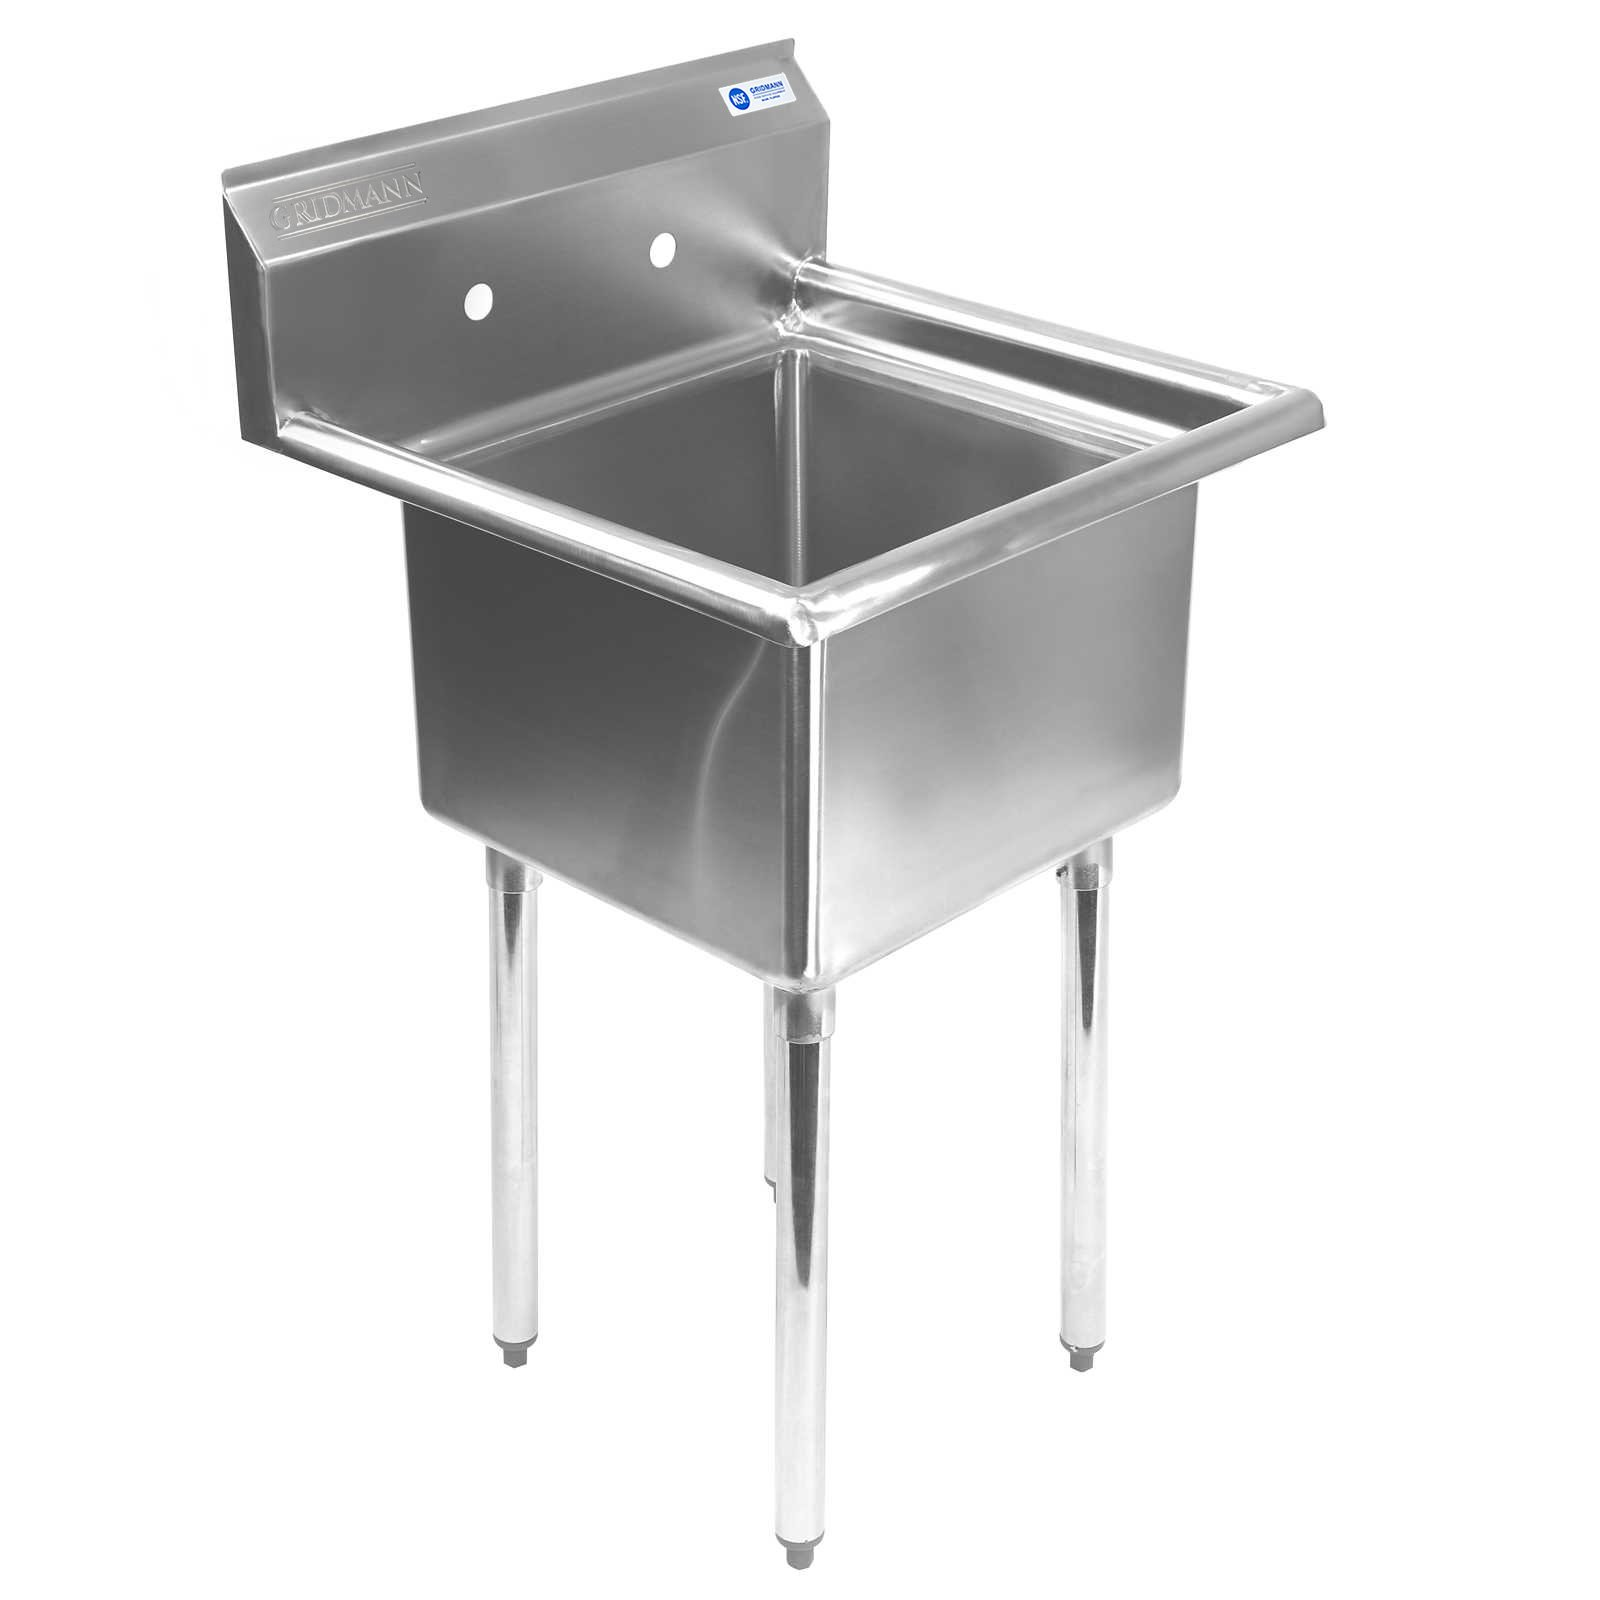 Gridmann 1 Compartment NSF Stainless Steel Commercial Kitchen Prep & Utility Sink - 23.5 in. Wide by Gridmann